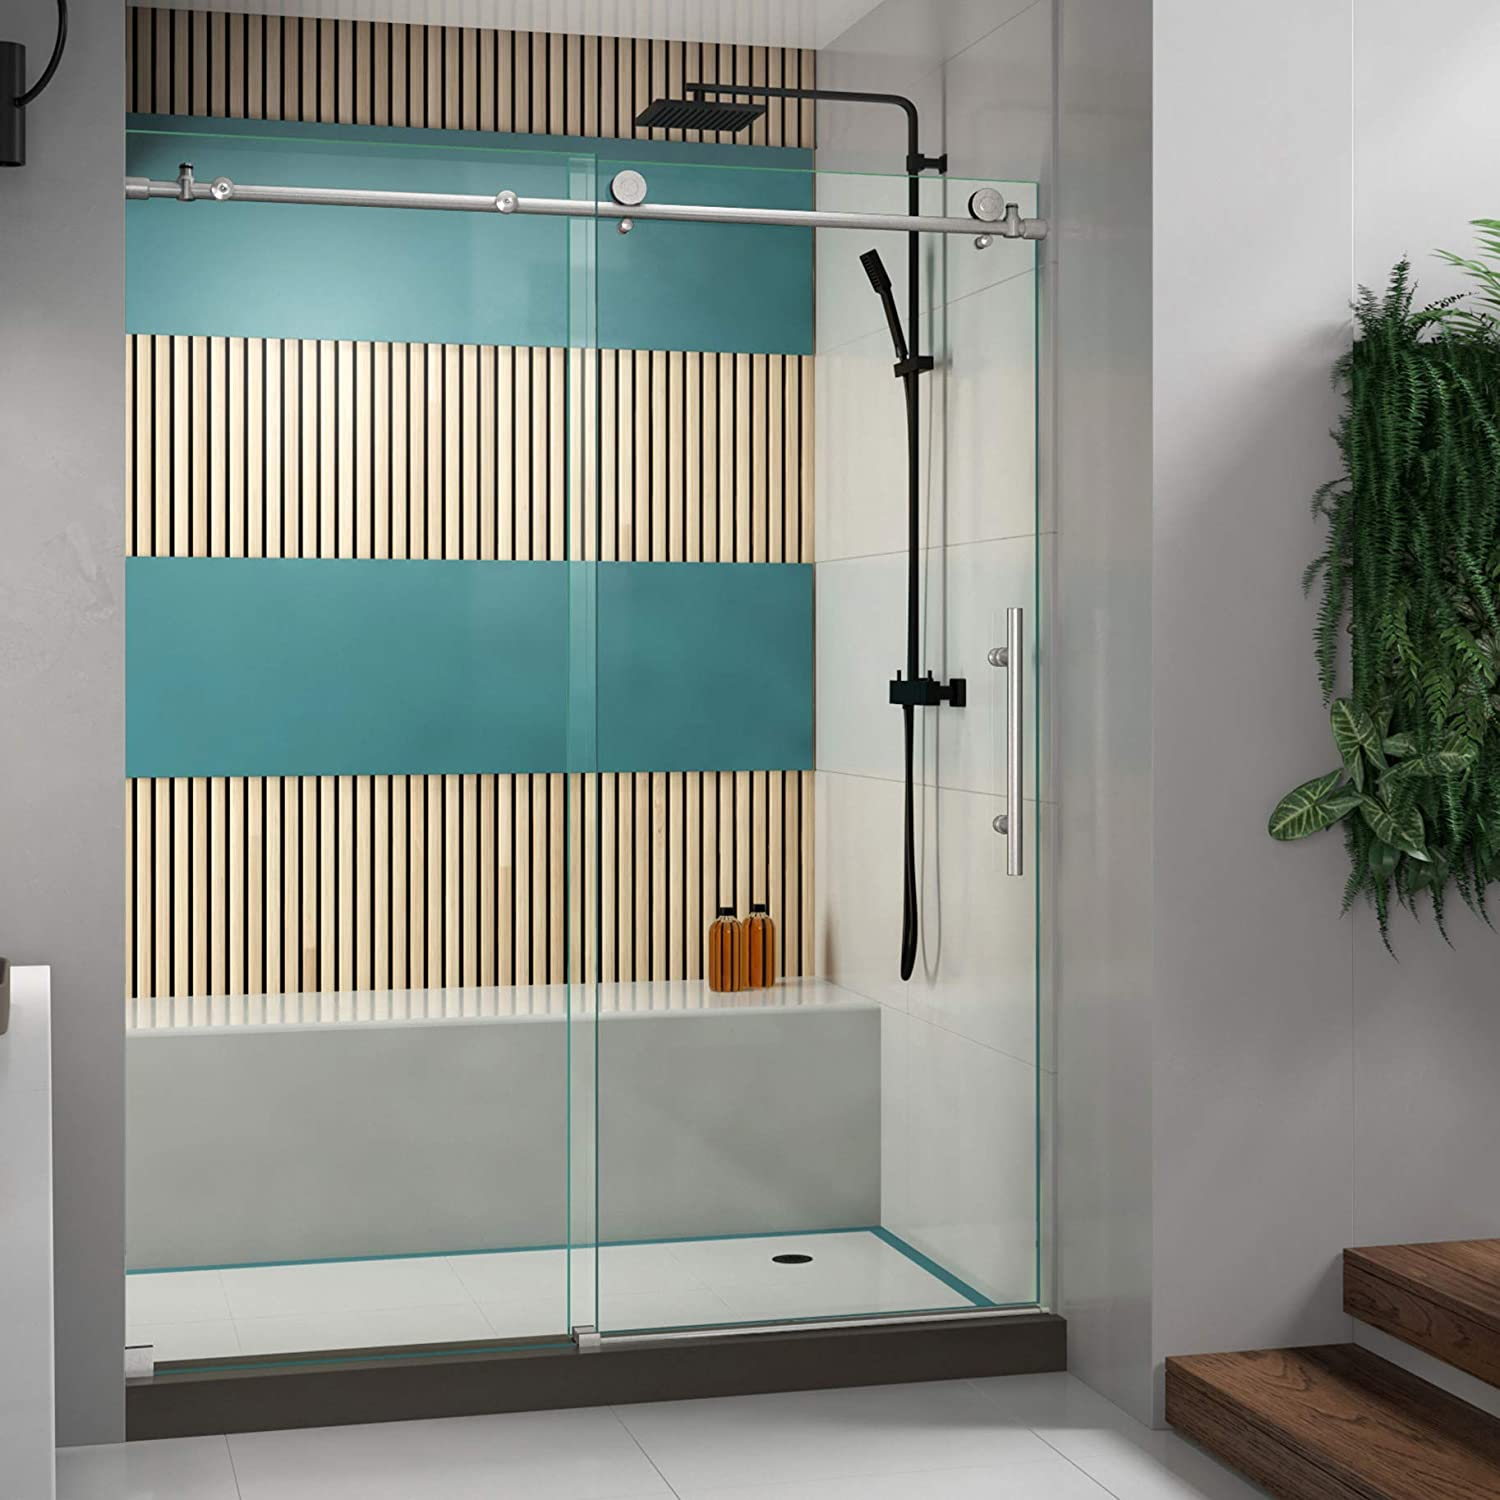 Best Shower Stalls for Small Bathrooms